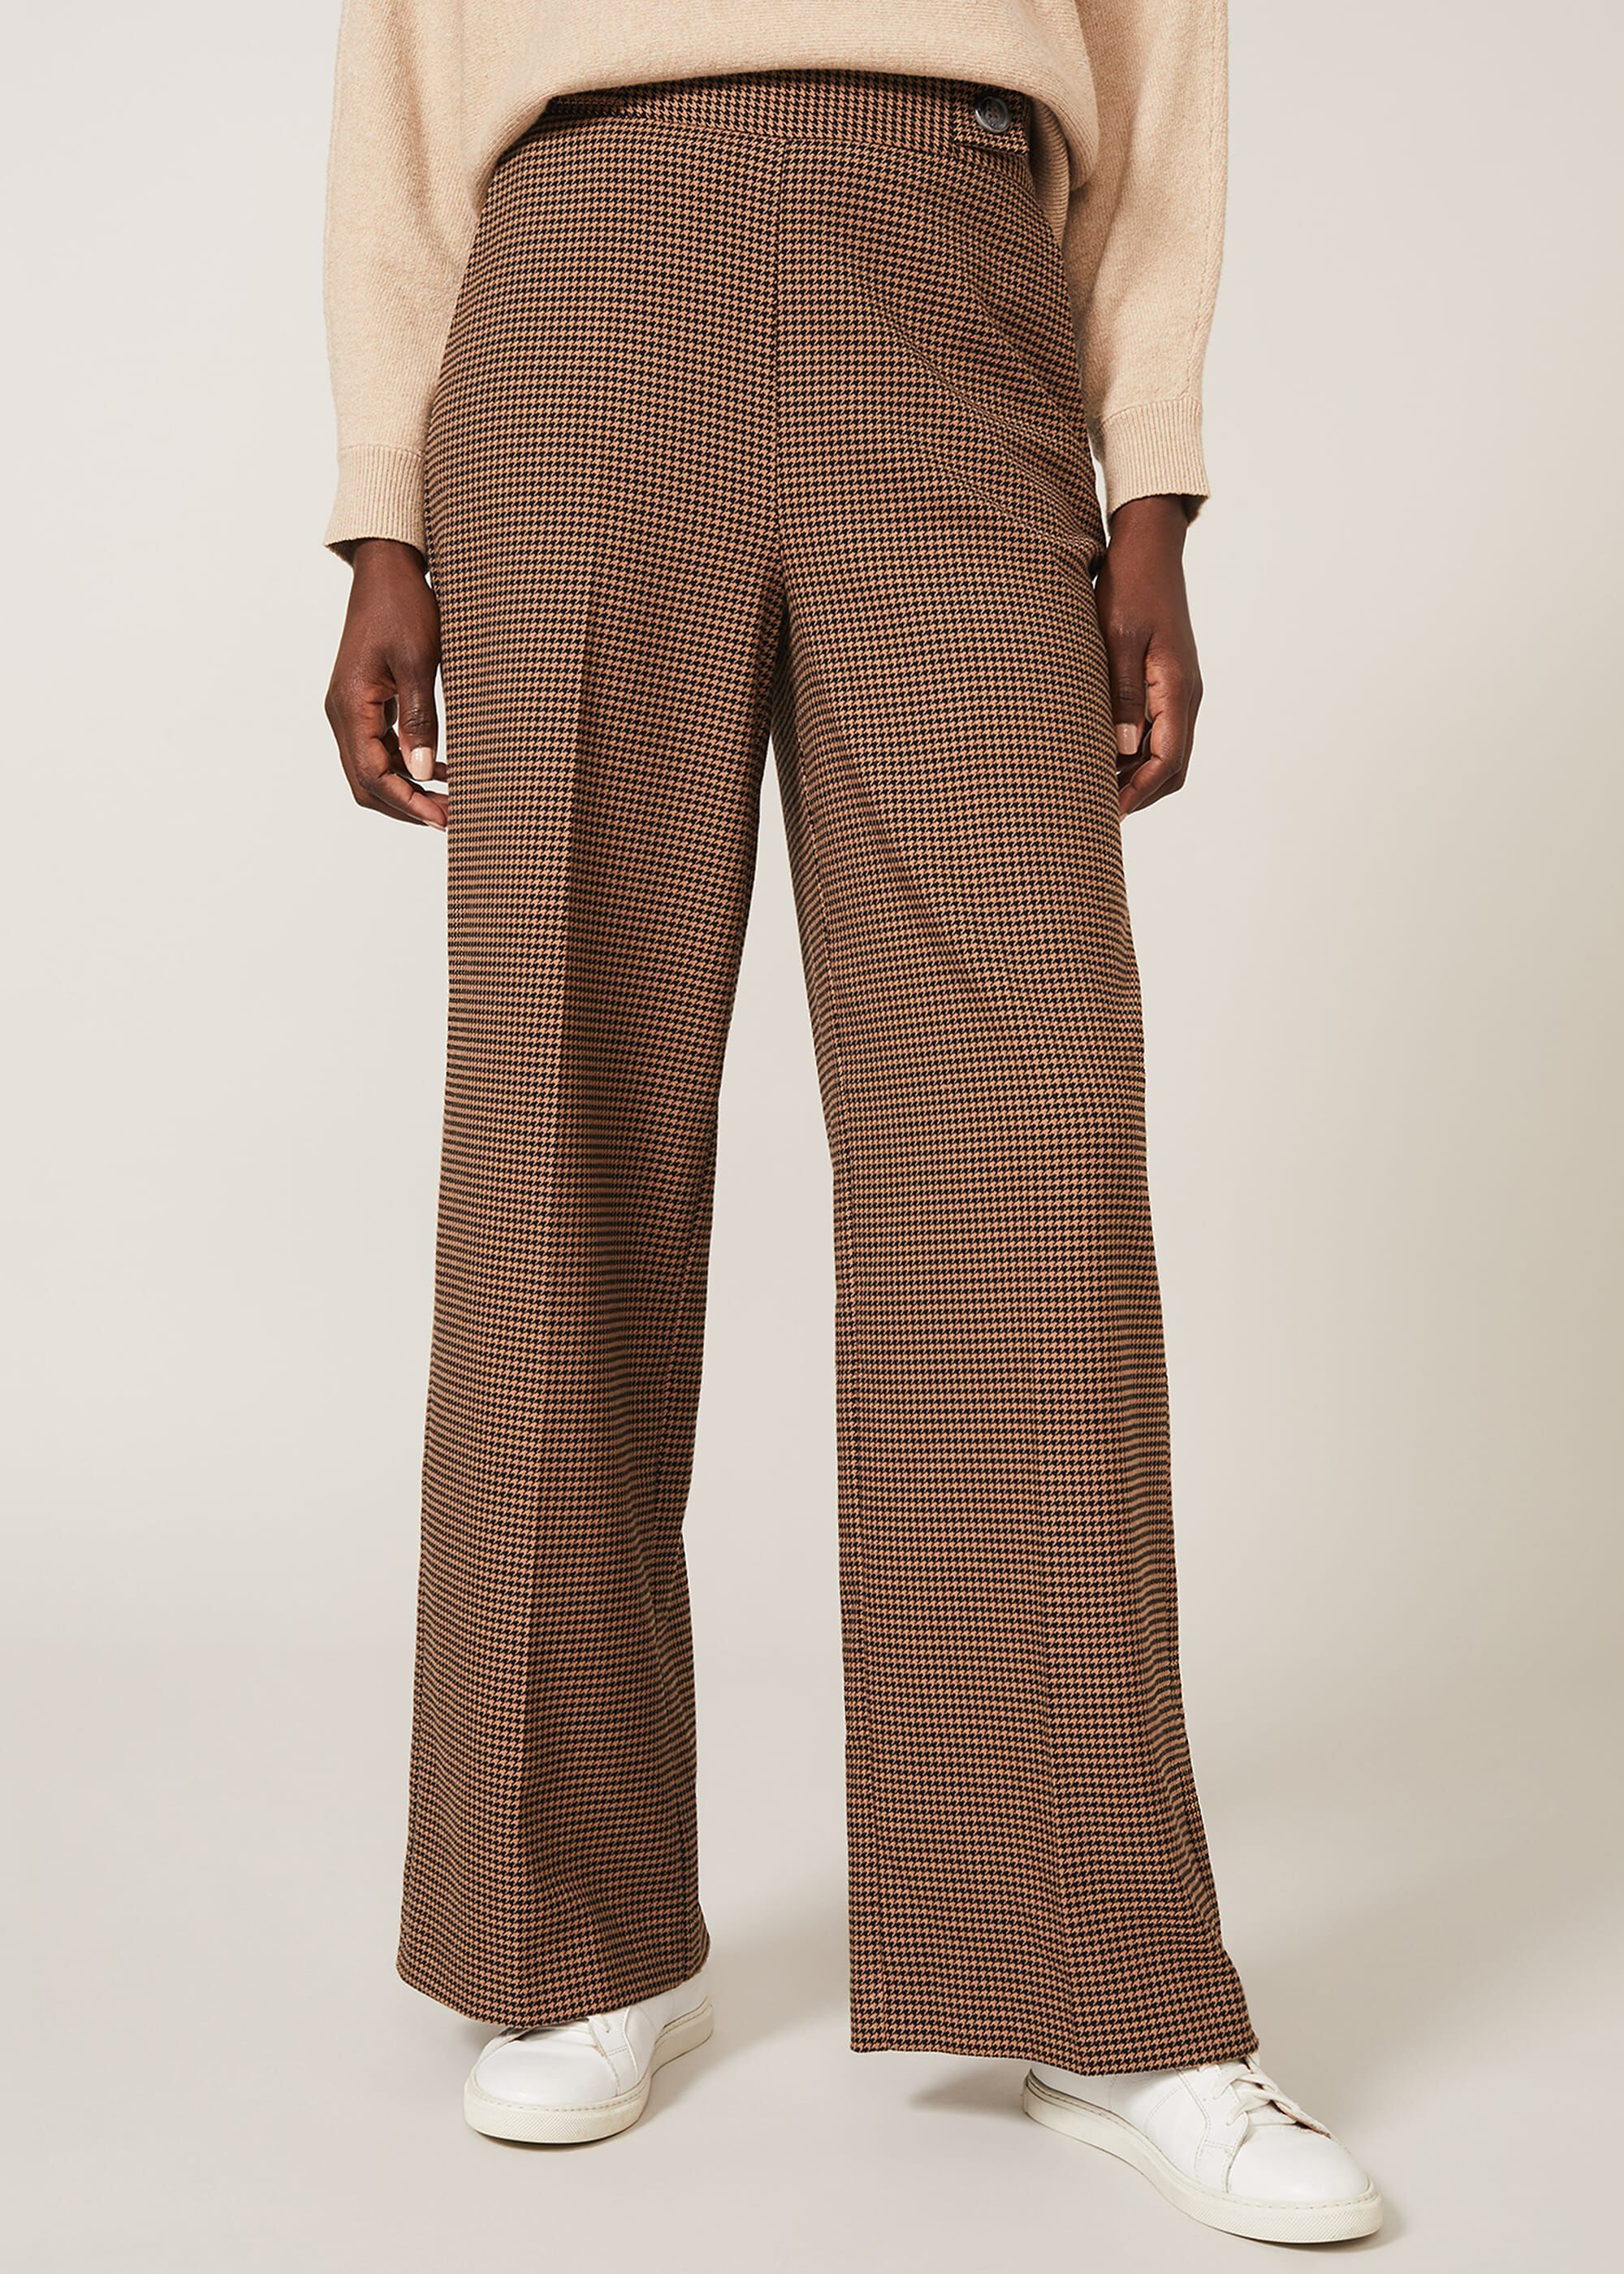 Phase Eight Women's Vye Dogtooth Wide Leg Trouser, Black, Wide